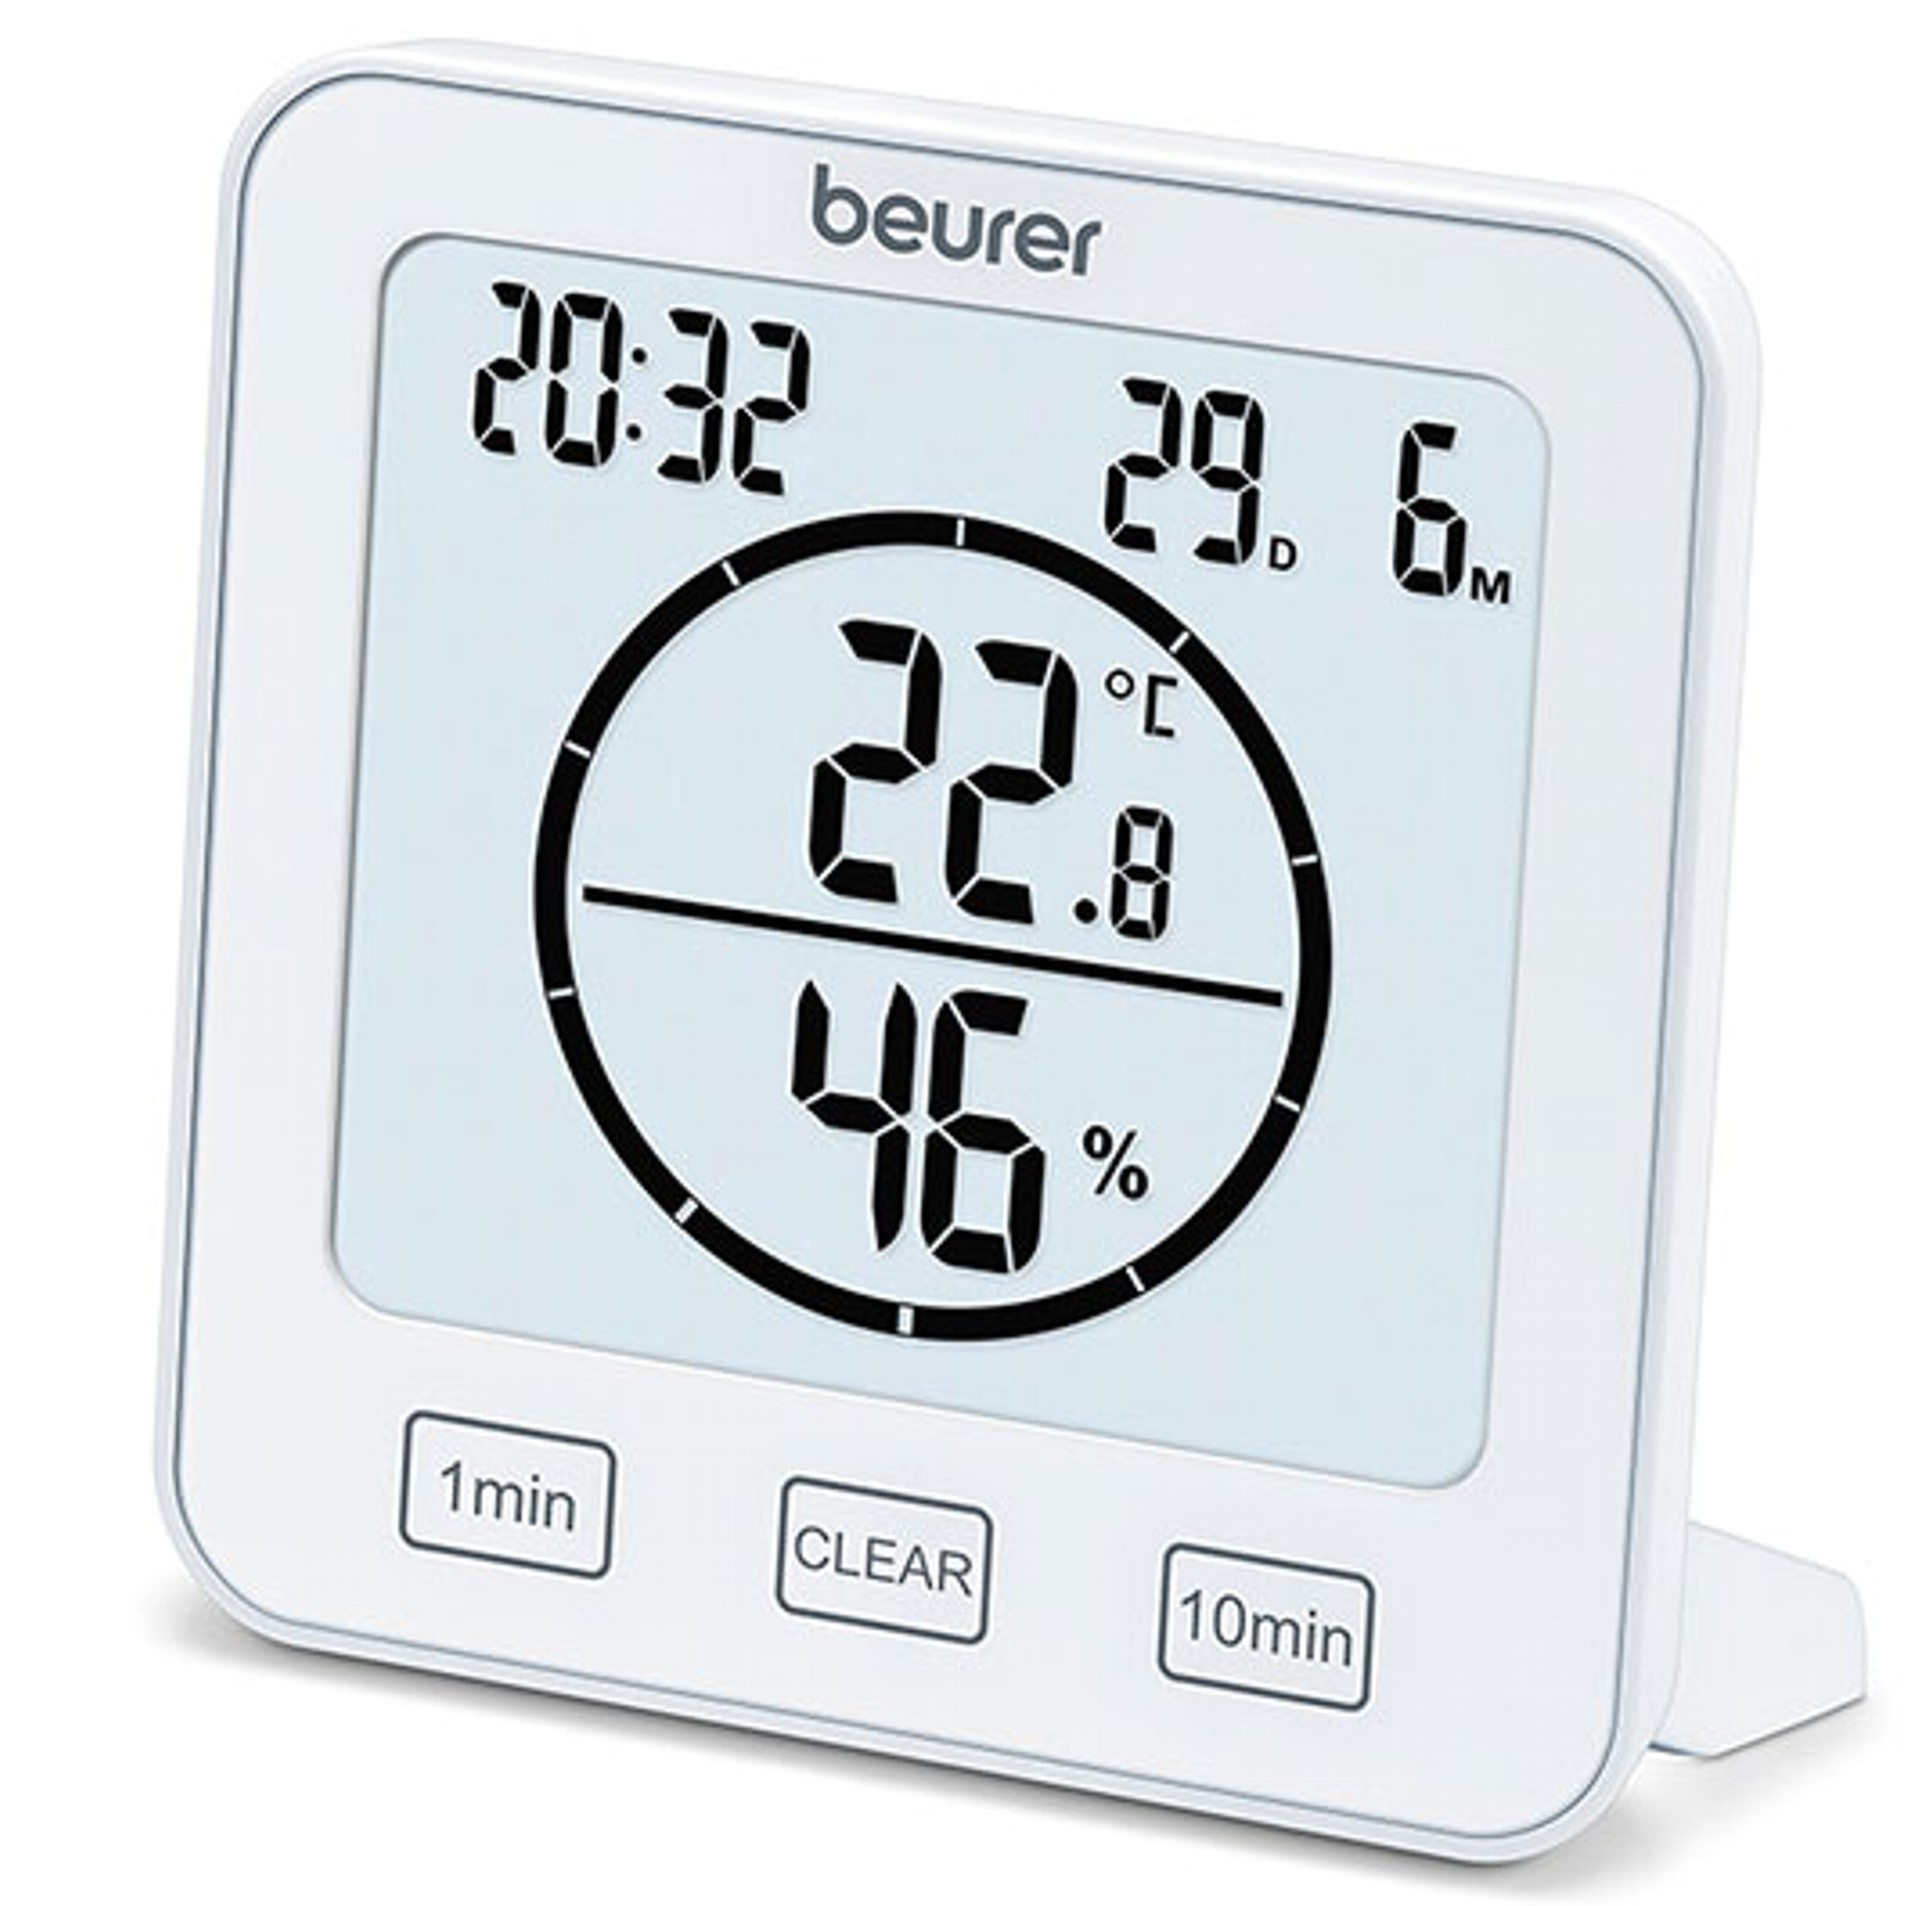 BEURER HM22 thermo-hygrometer